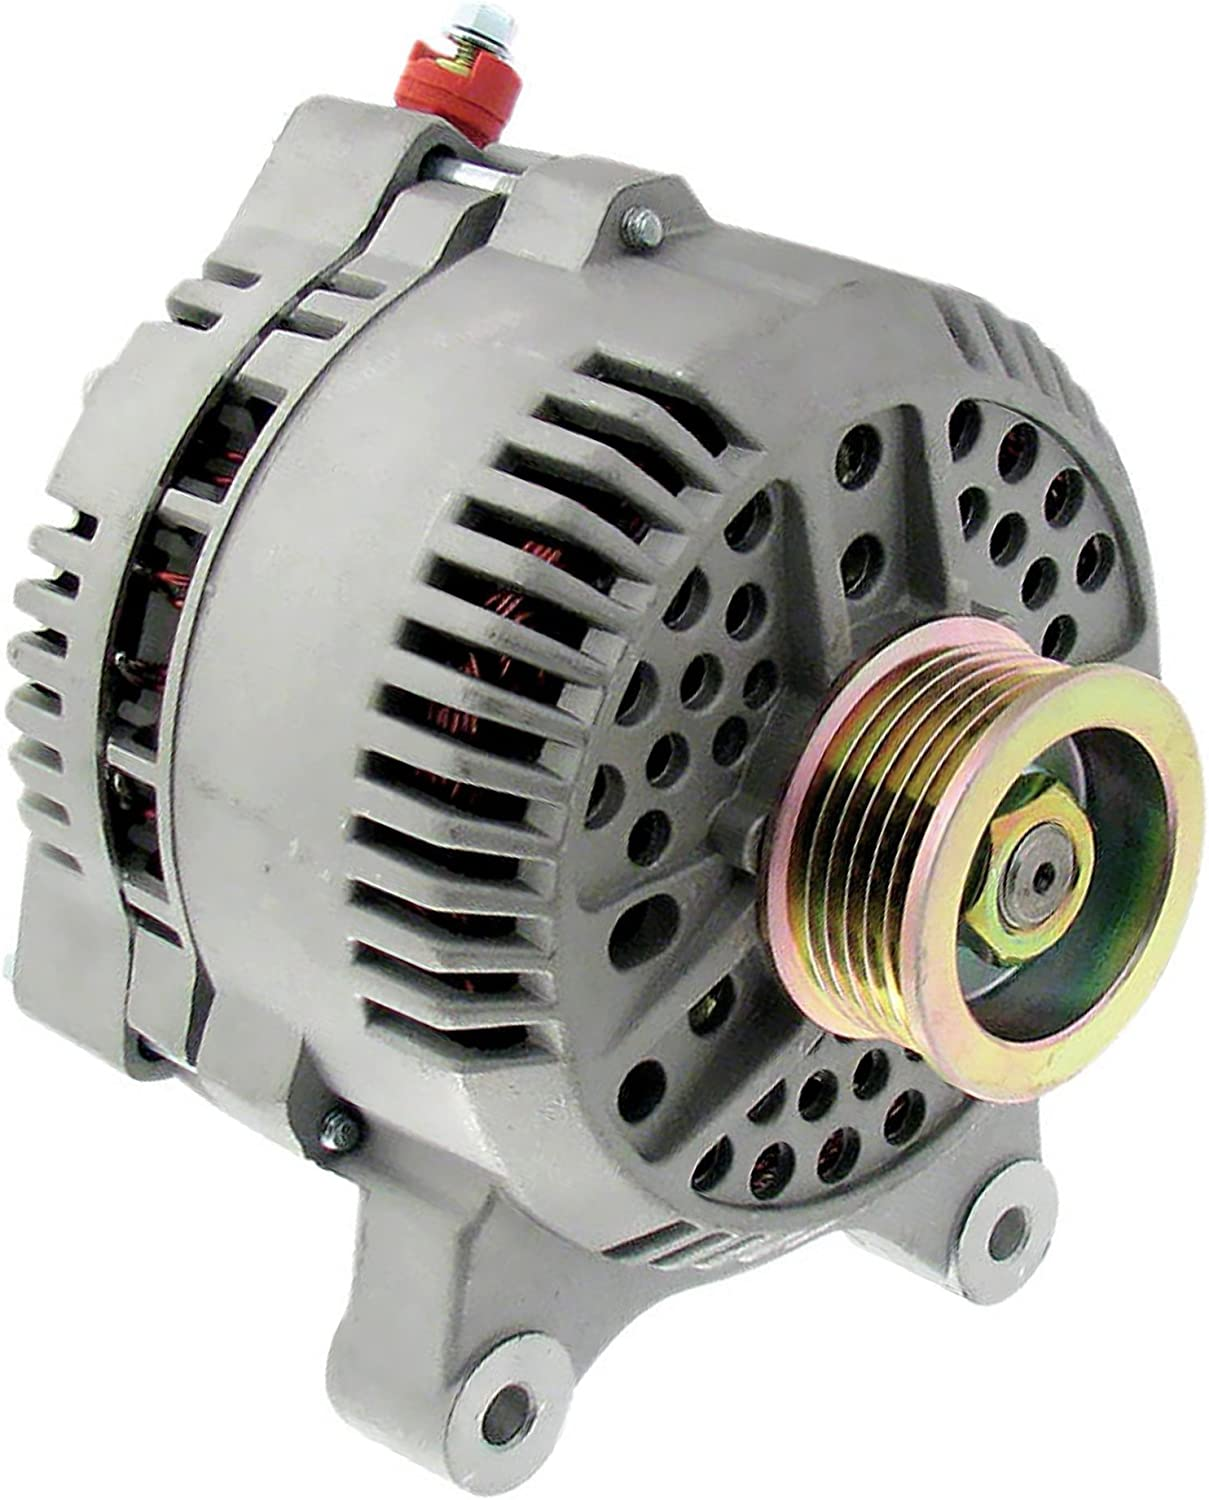 NEW ALTERNATOR FOR 4.6L 4.6 FORD MUSTANG 96 97 98 1996 1997 1998 2L3U-10300-BB